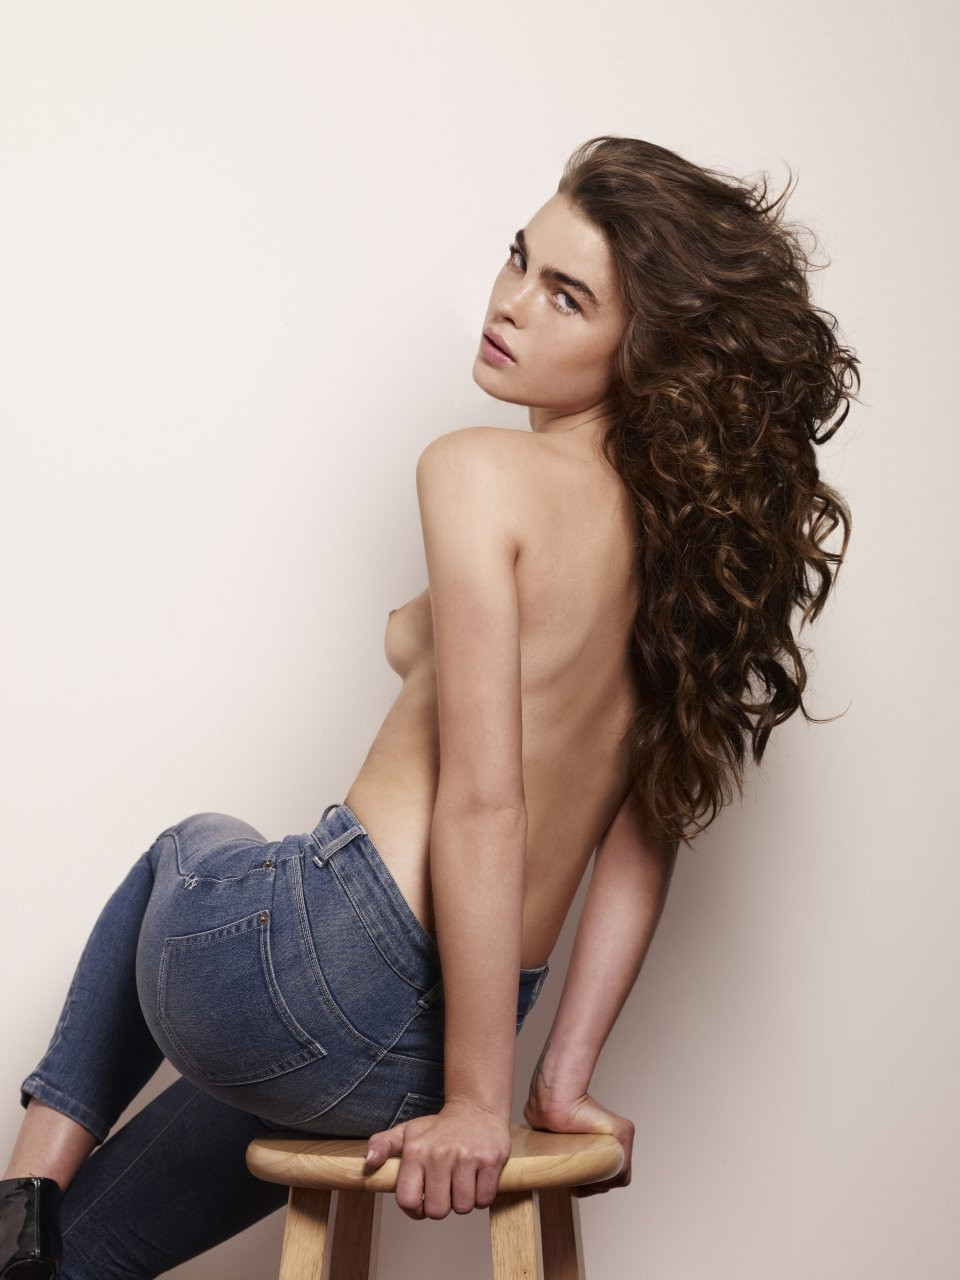 Bambi Northwood Blyth Topless 03 TheFappening.nu